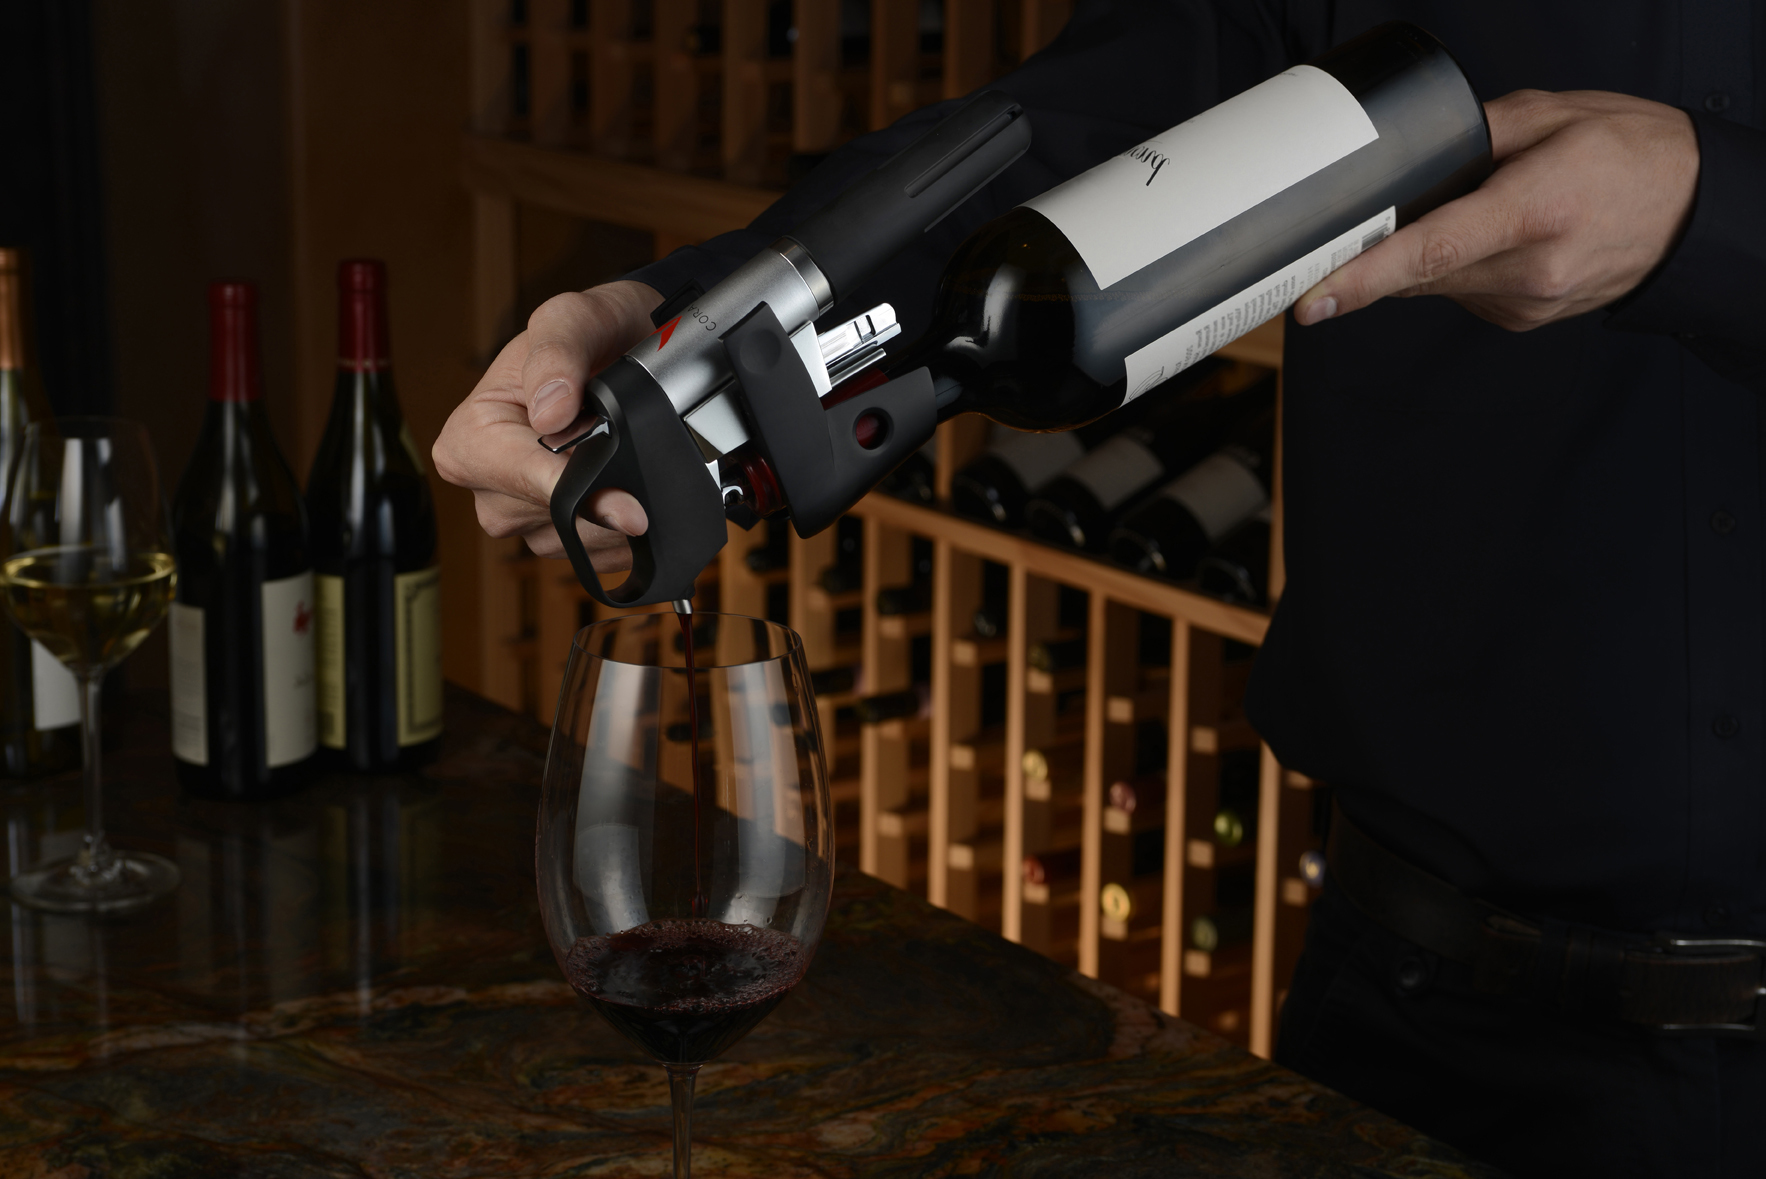 The Coravin 1000 System pulls wine out of a bottle as easily as it is to make it disappear.